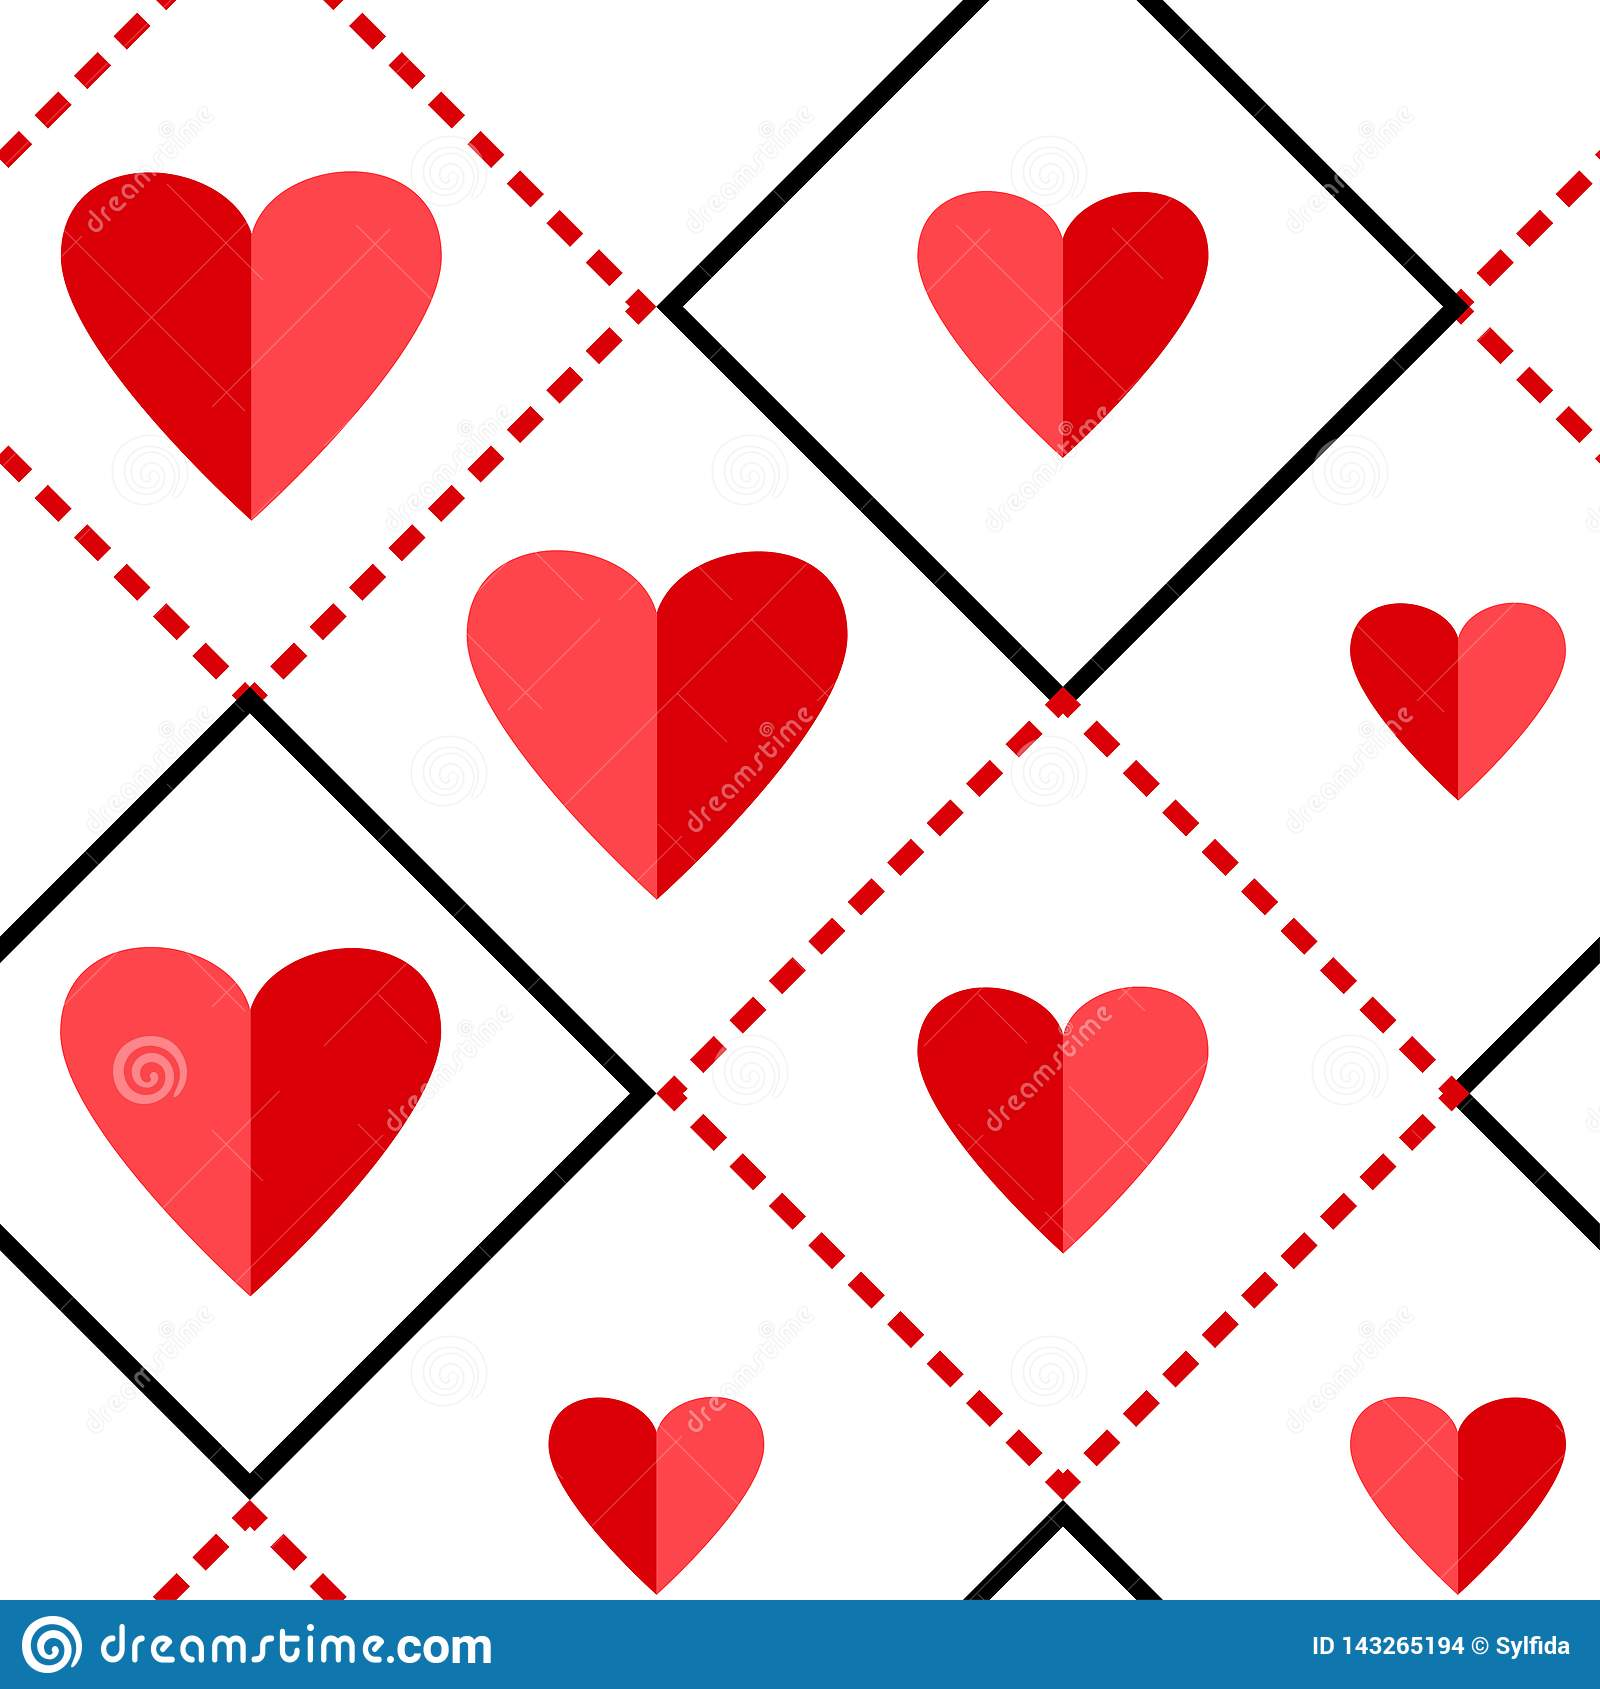 Geometric seamless pattern with squares and red hearts. Vector illustration